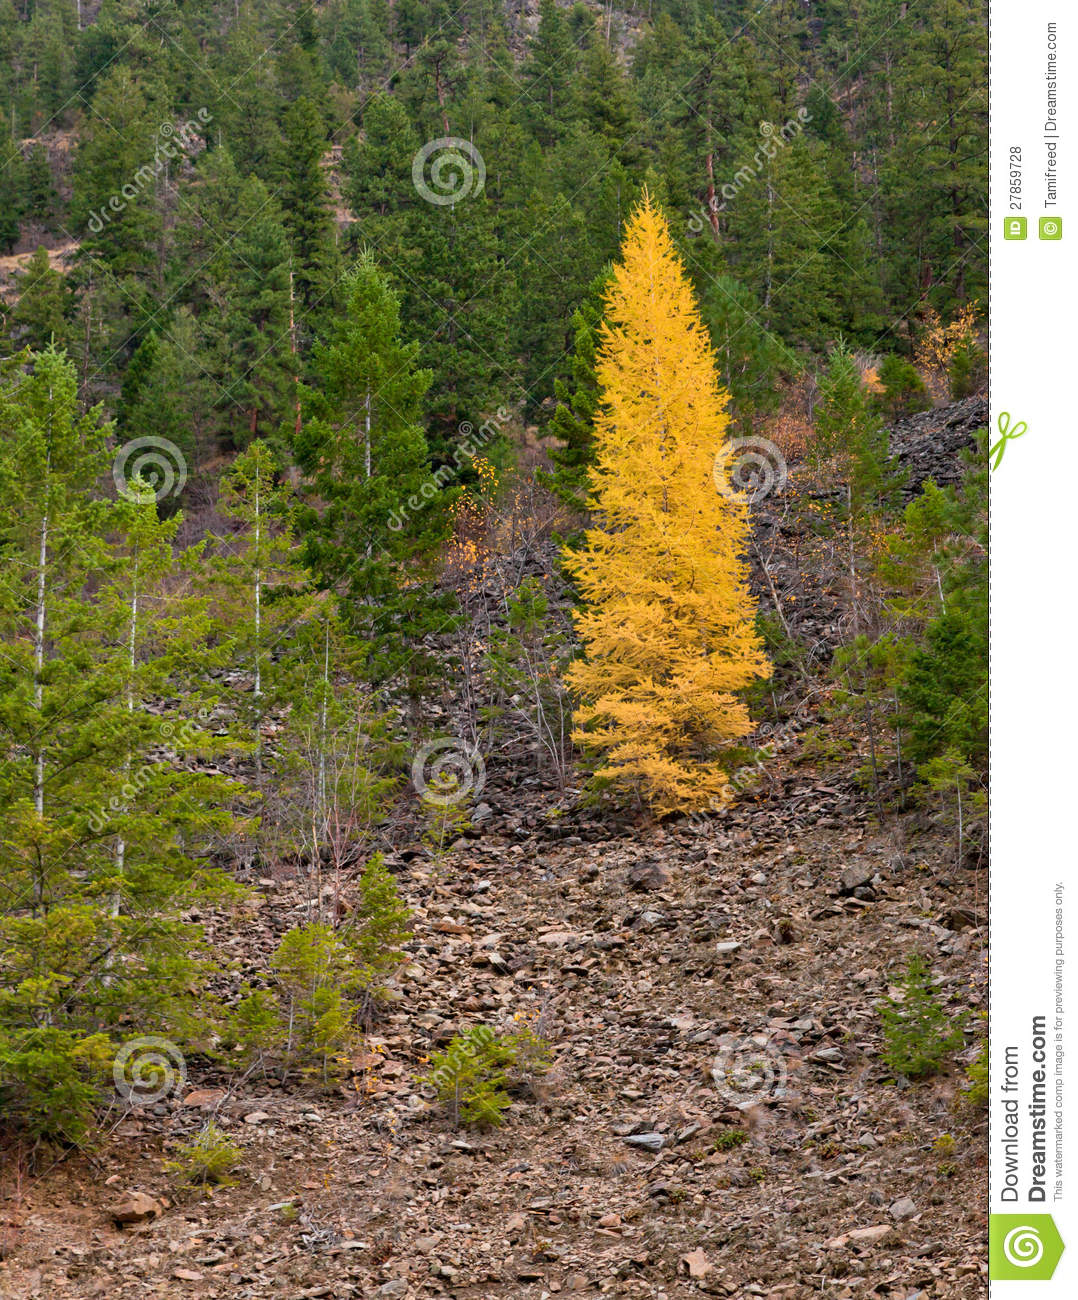 tamarack tree in fall colors stands in contrast to the other green ...